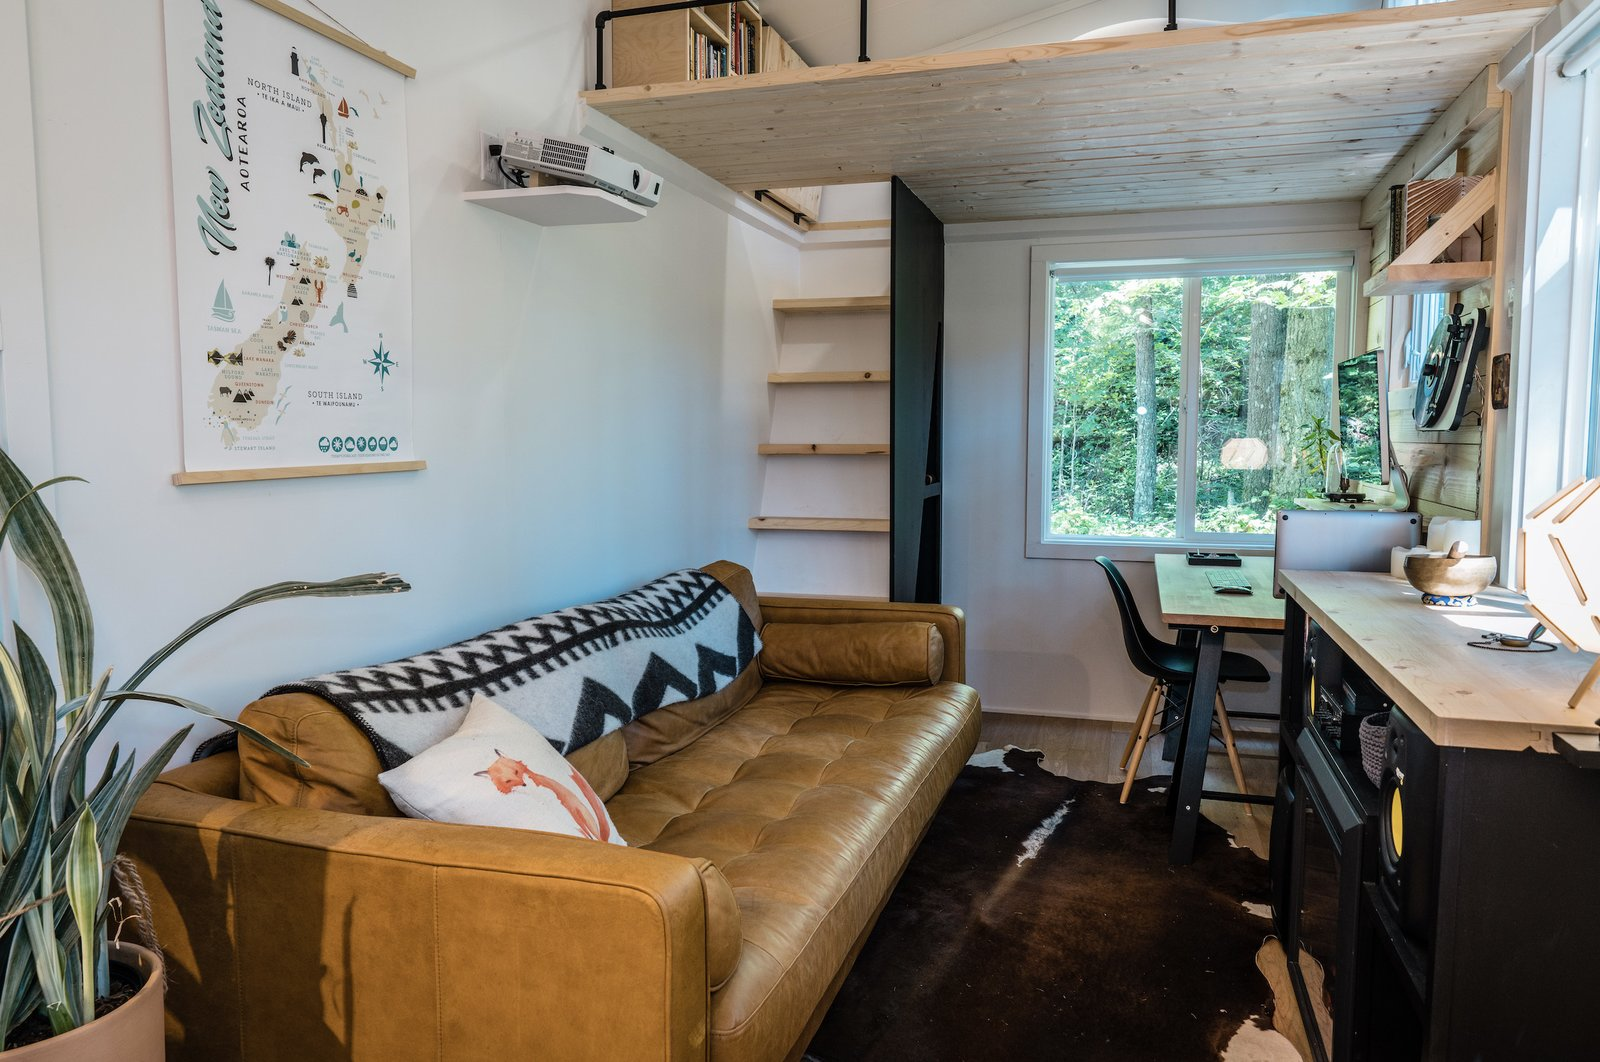 Inside, the approximately 330-square-foot space features two lofts at either end. The home is currently outfitted with a mix of designer furnishings, which can be negotiated in the sale.  Photo 2 of 11 in A Furnished Tiny Home With Japanese and Scandinavian Vibes Is Offered at $99K